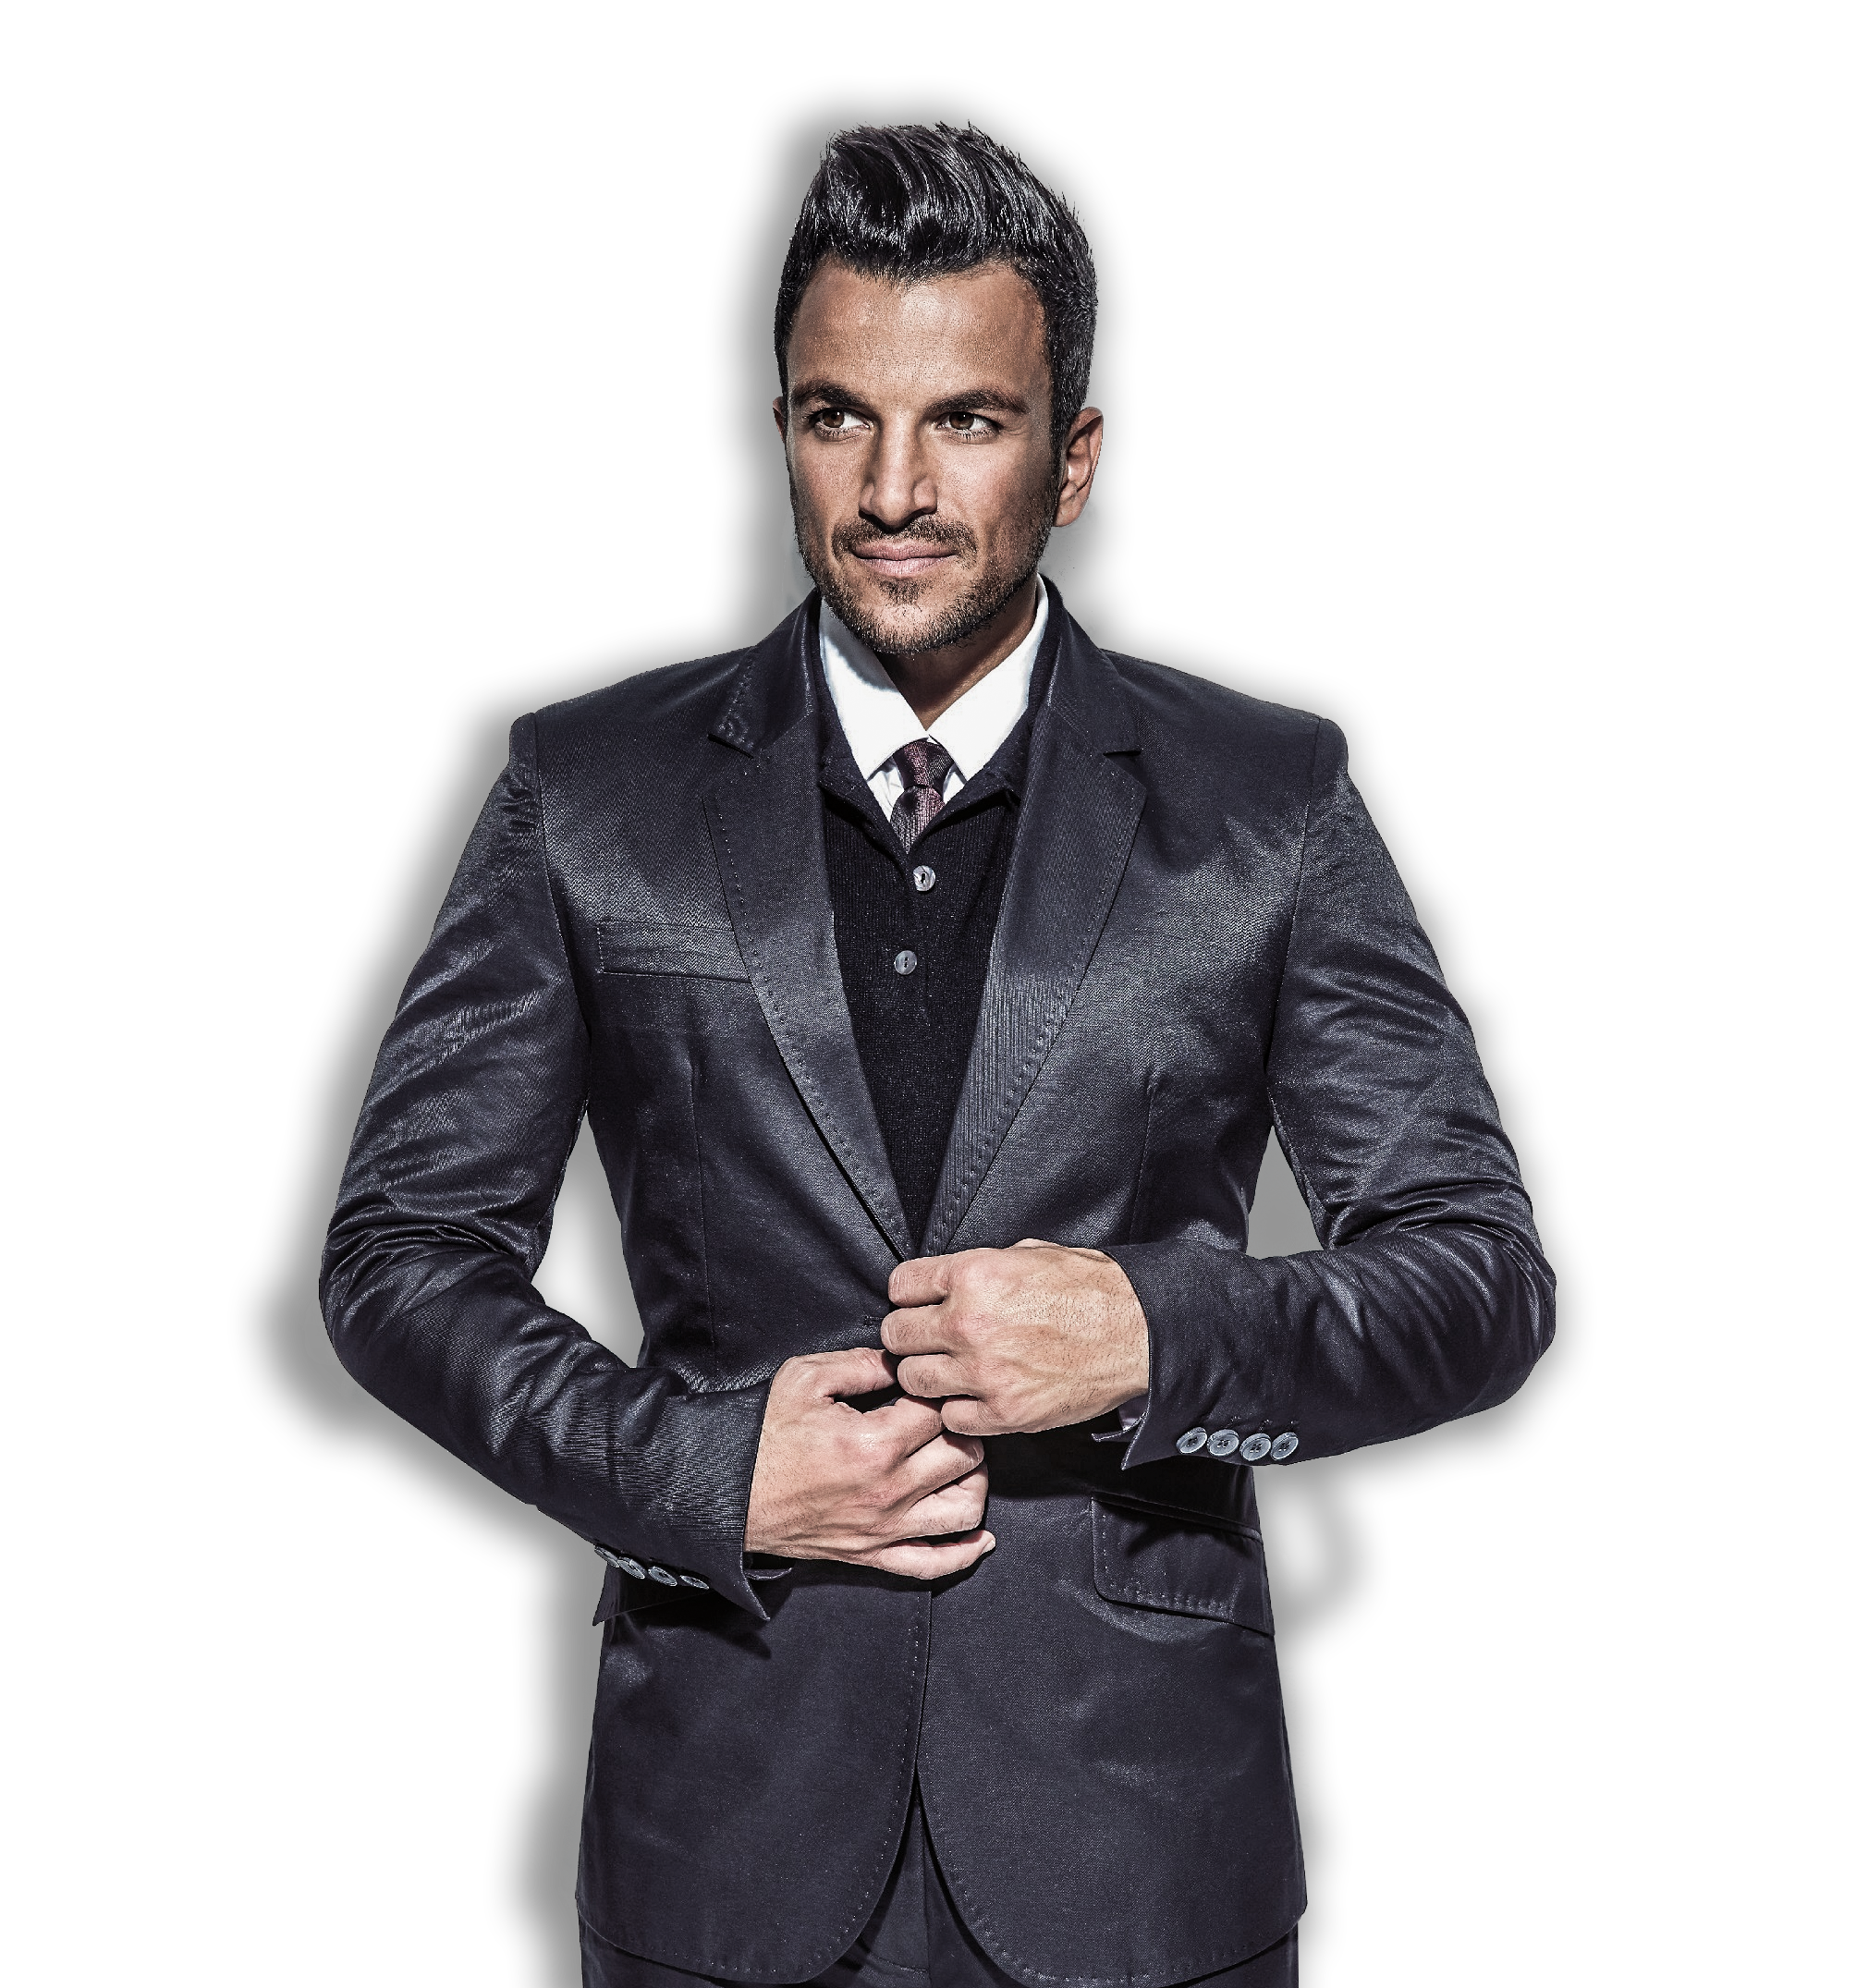 Peter andre unscripted mda promotions peter andre m4hsunfo